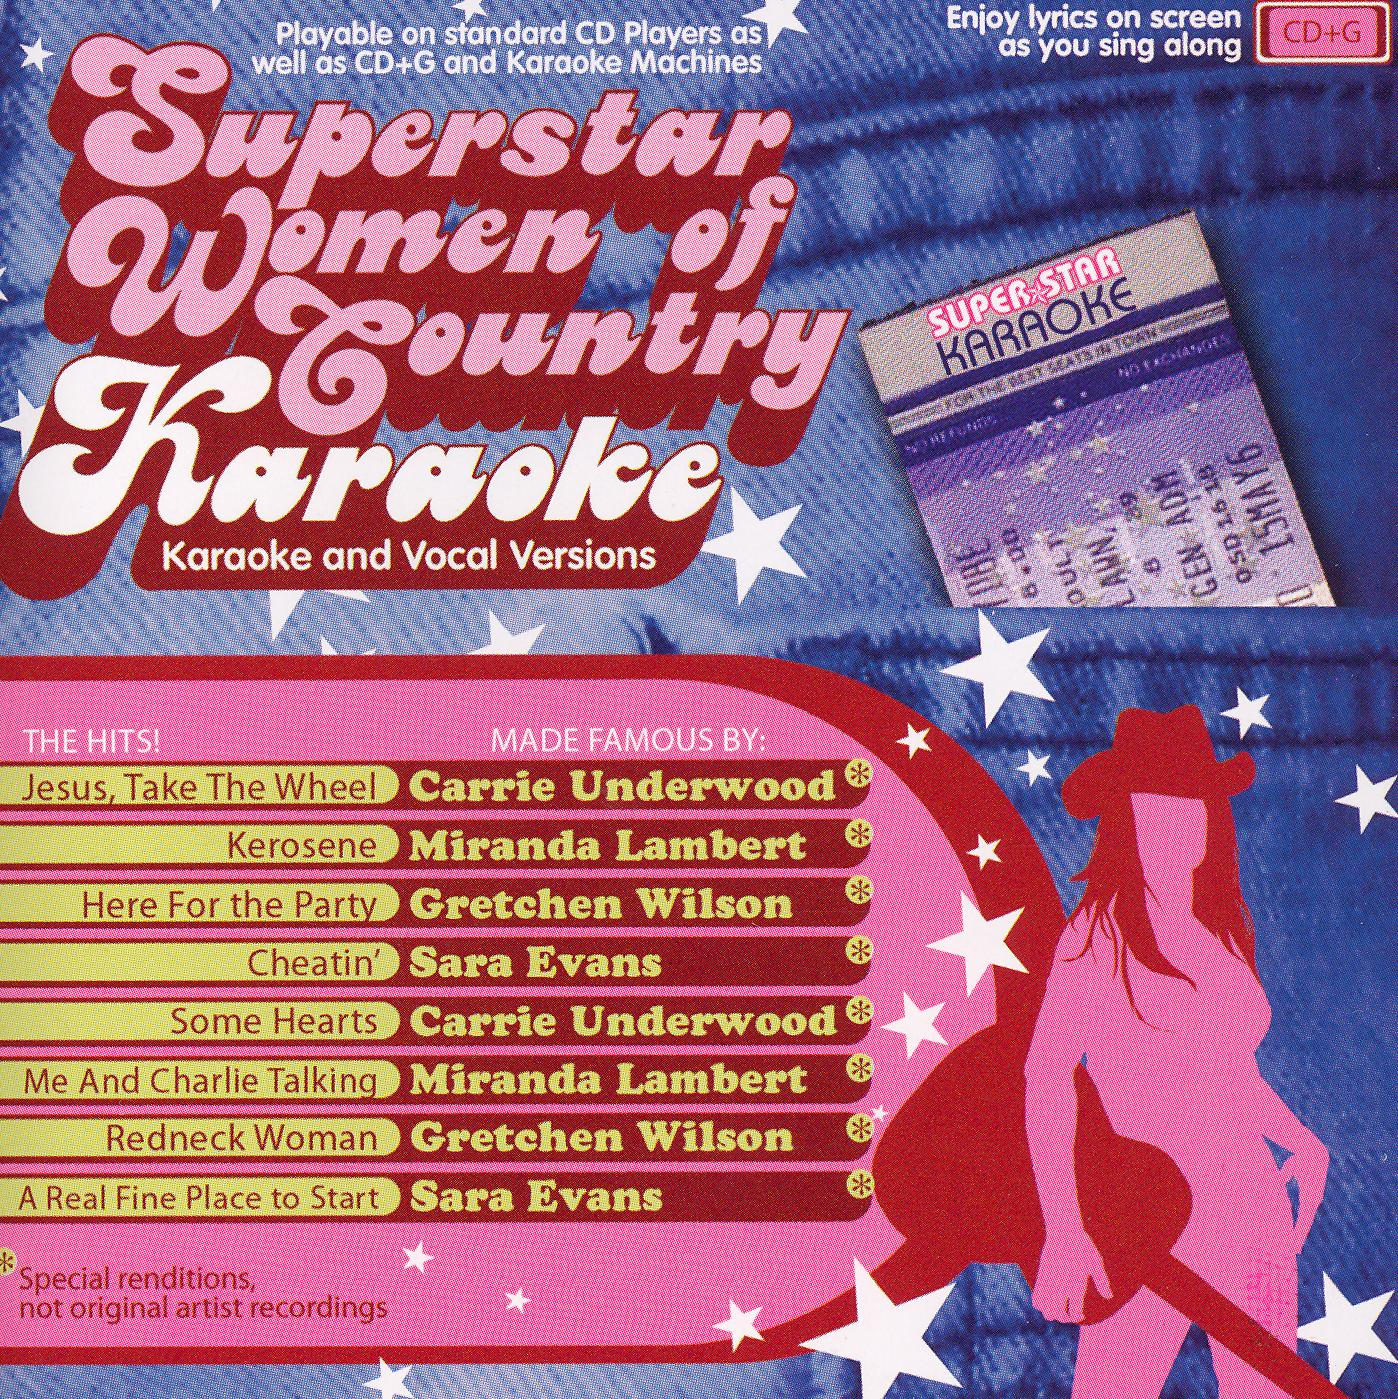 Superstar Women of Country: Karaoke